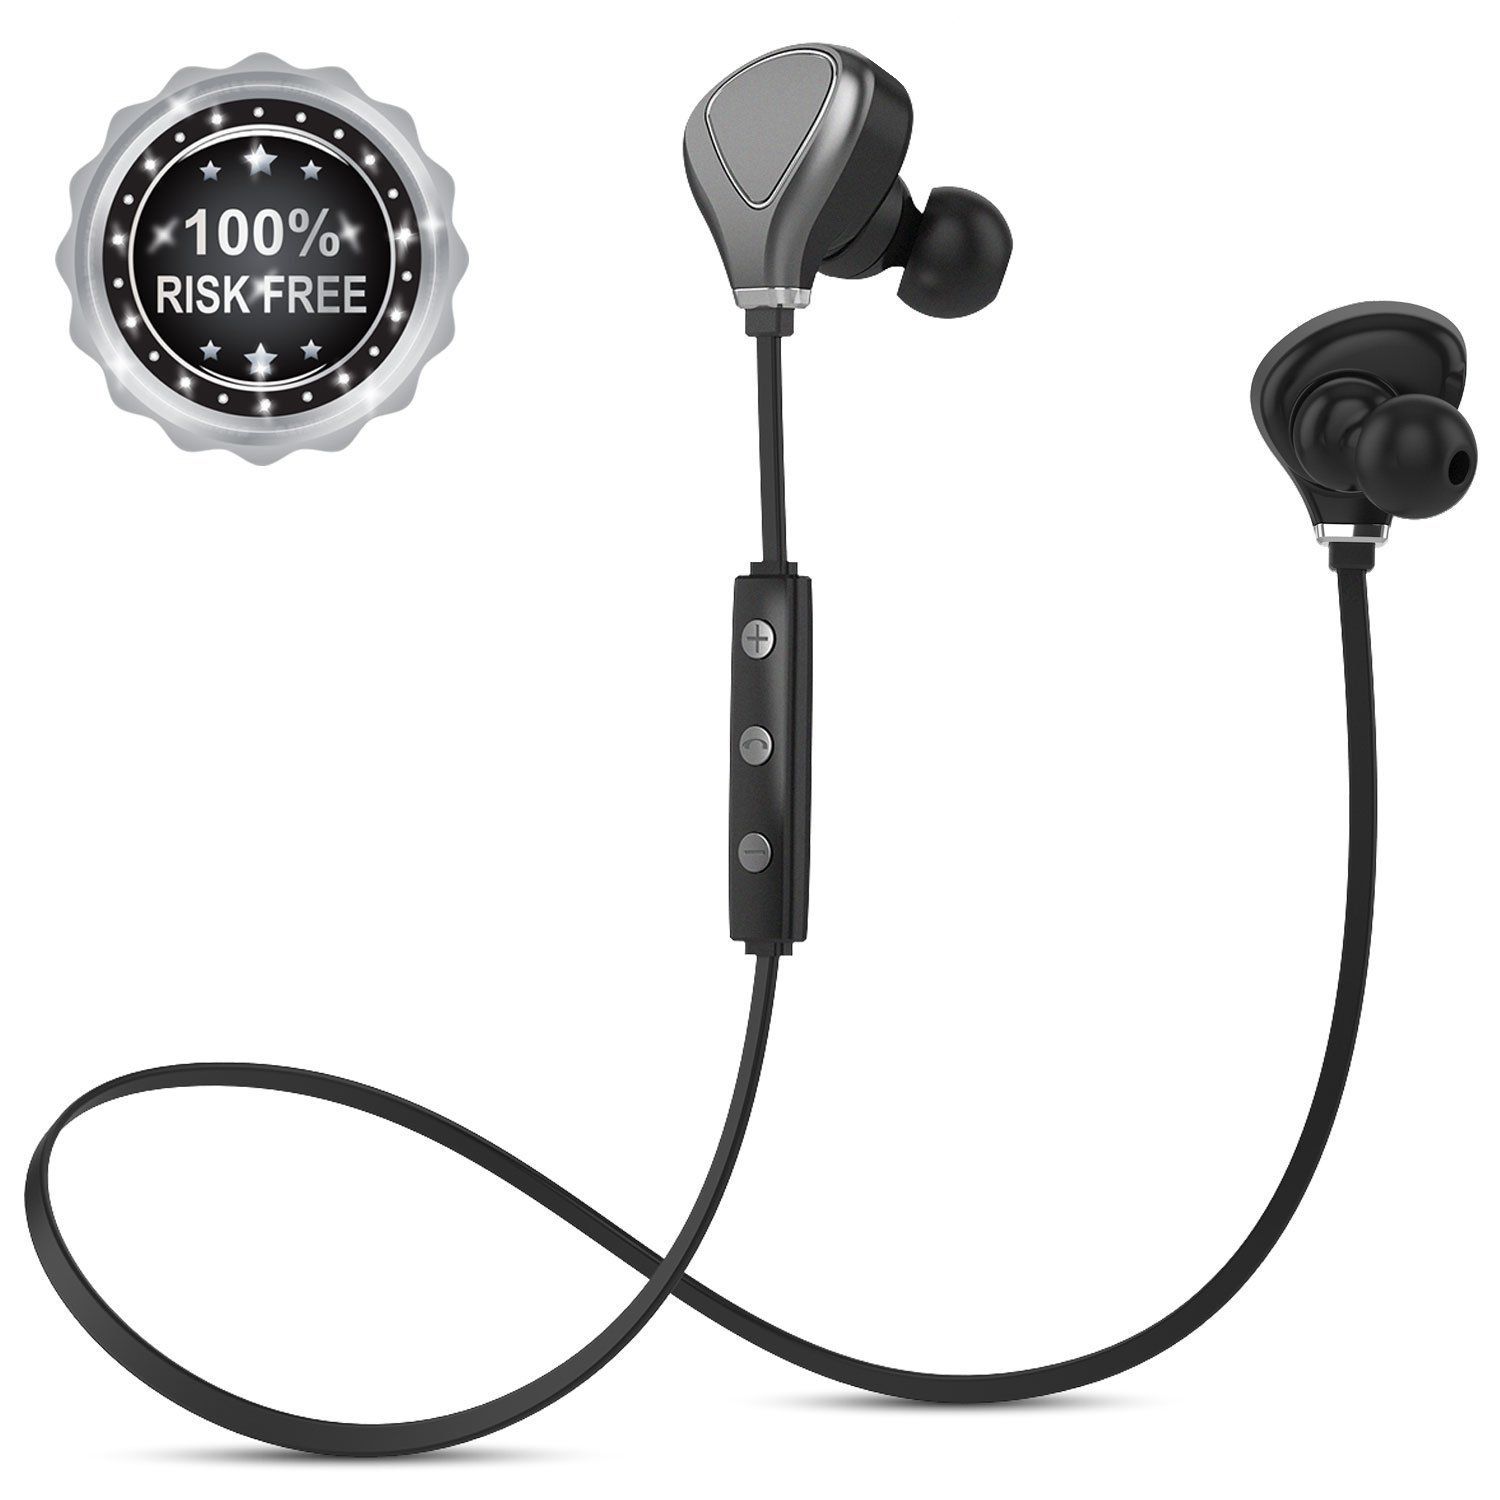 Amazon.com: InzhiRui Bluetooth Headphones Sports with Mic Wireless Earbuds for Running Gym Workout Cordless In-Ear Magnetic Sweatproof Earphones Headset for ...